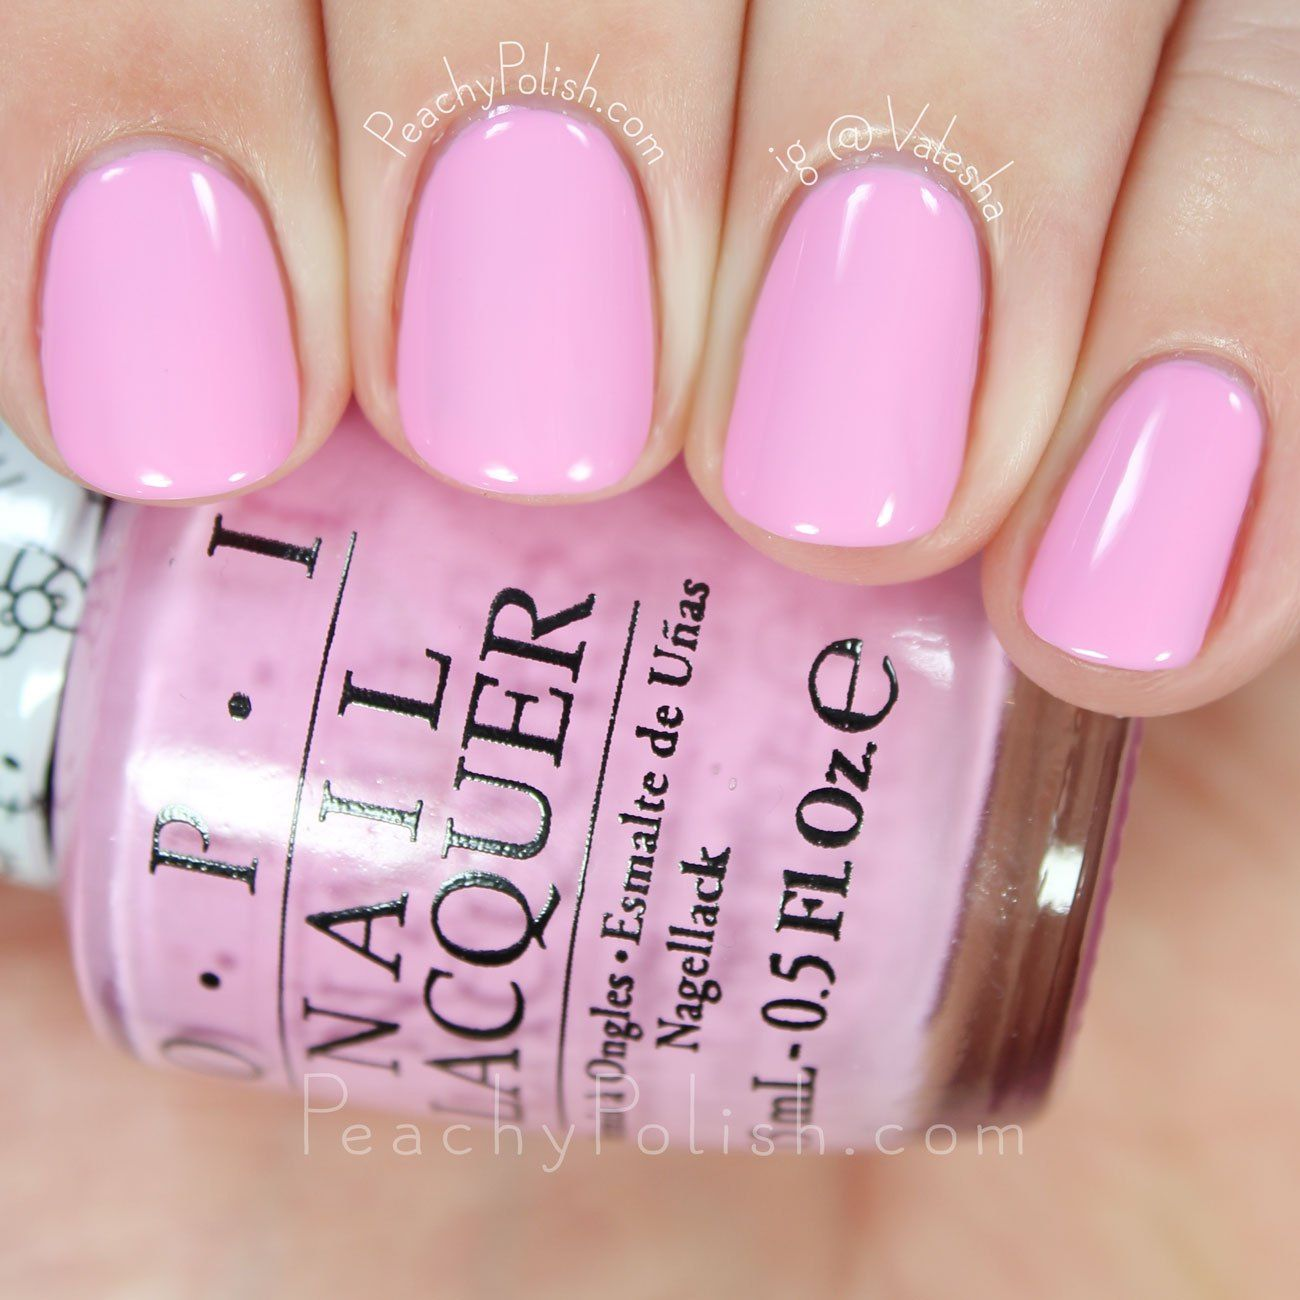 Opi Look At My Bow Hello Kitty Collection Peachy